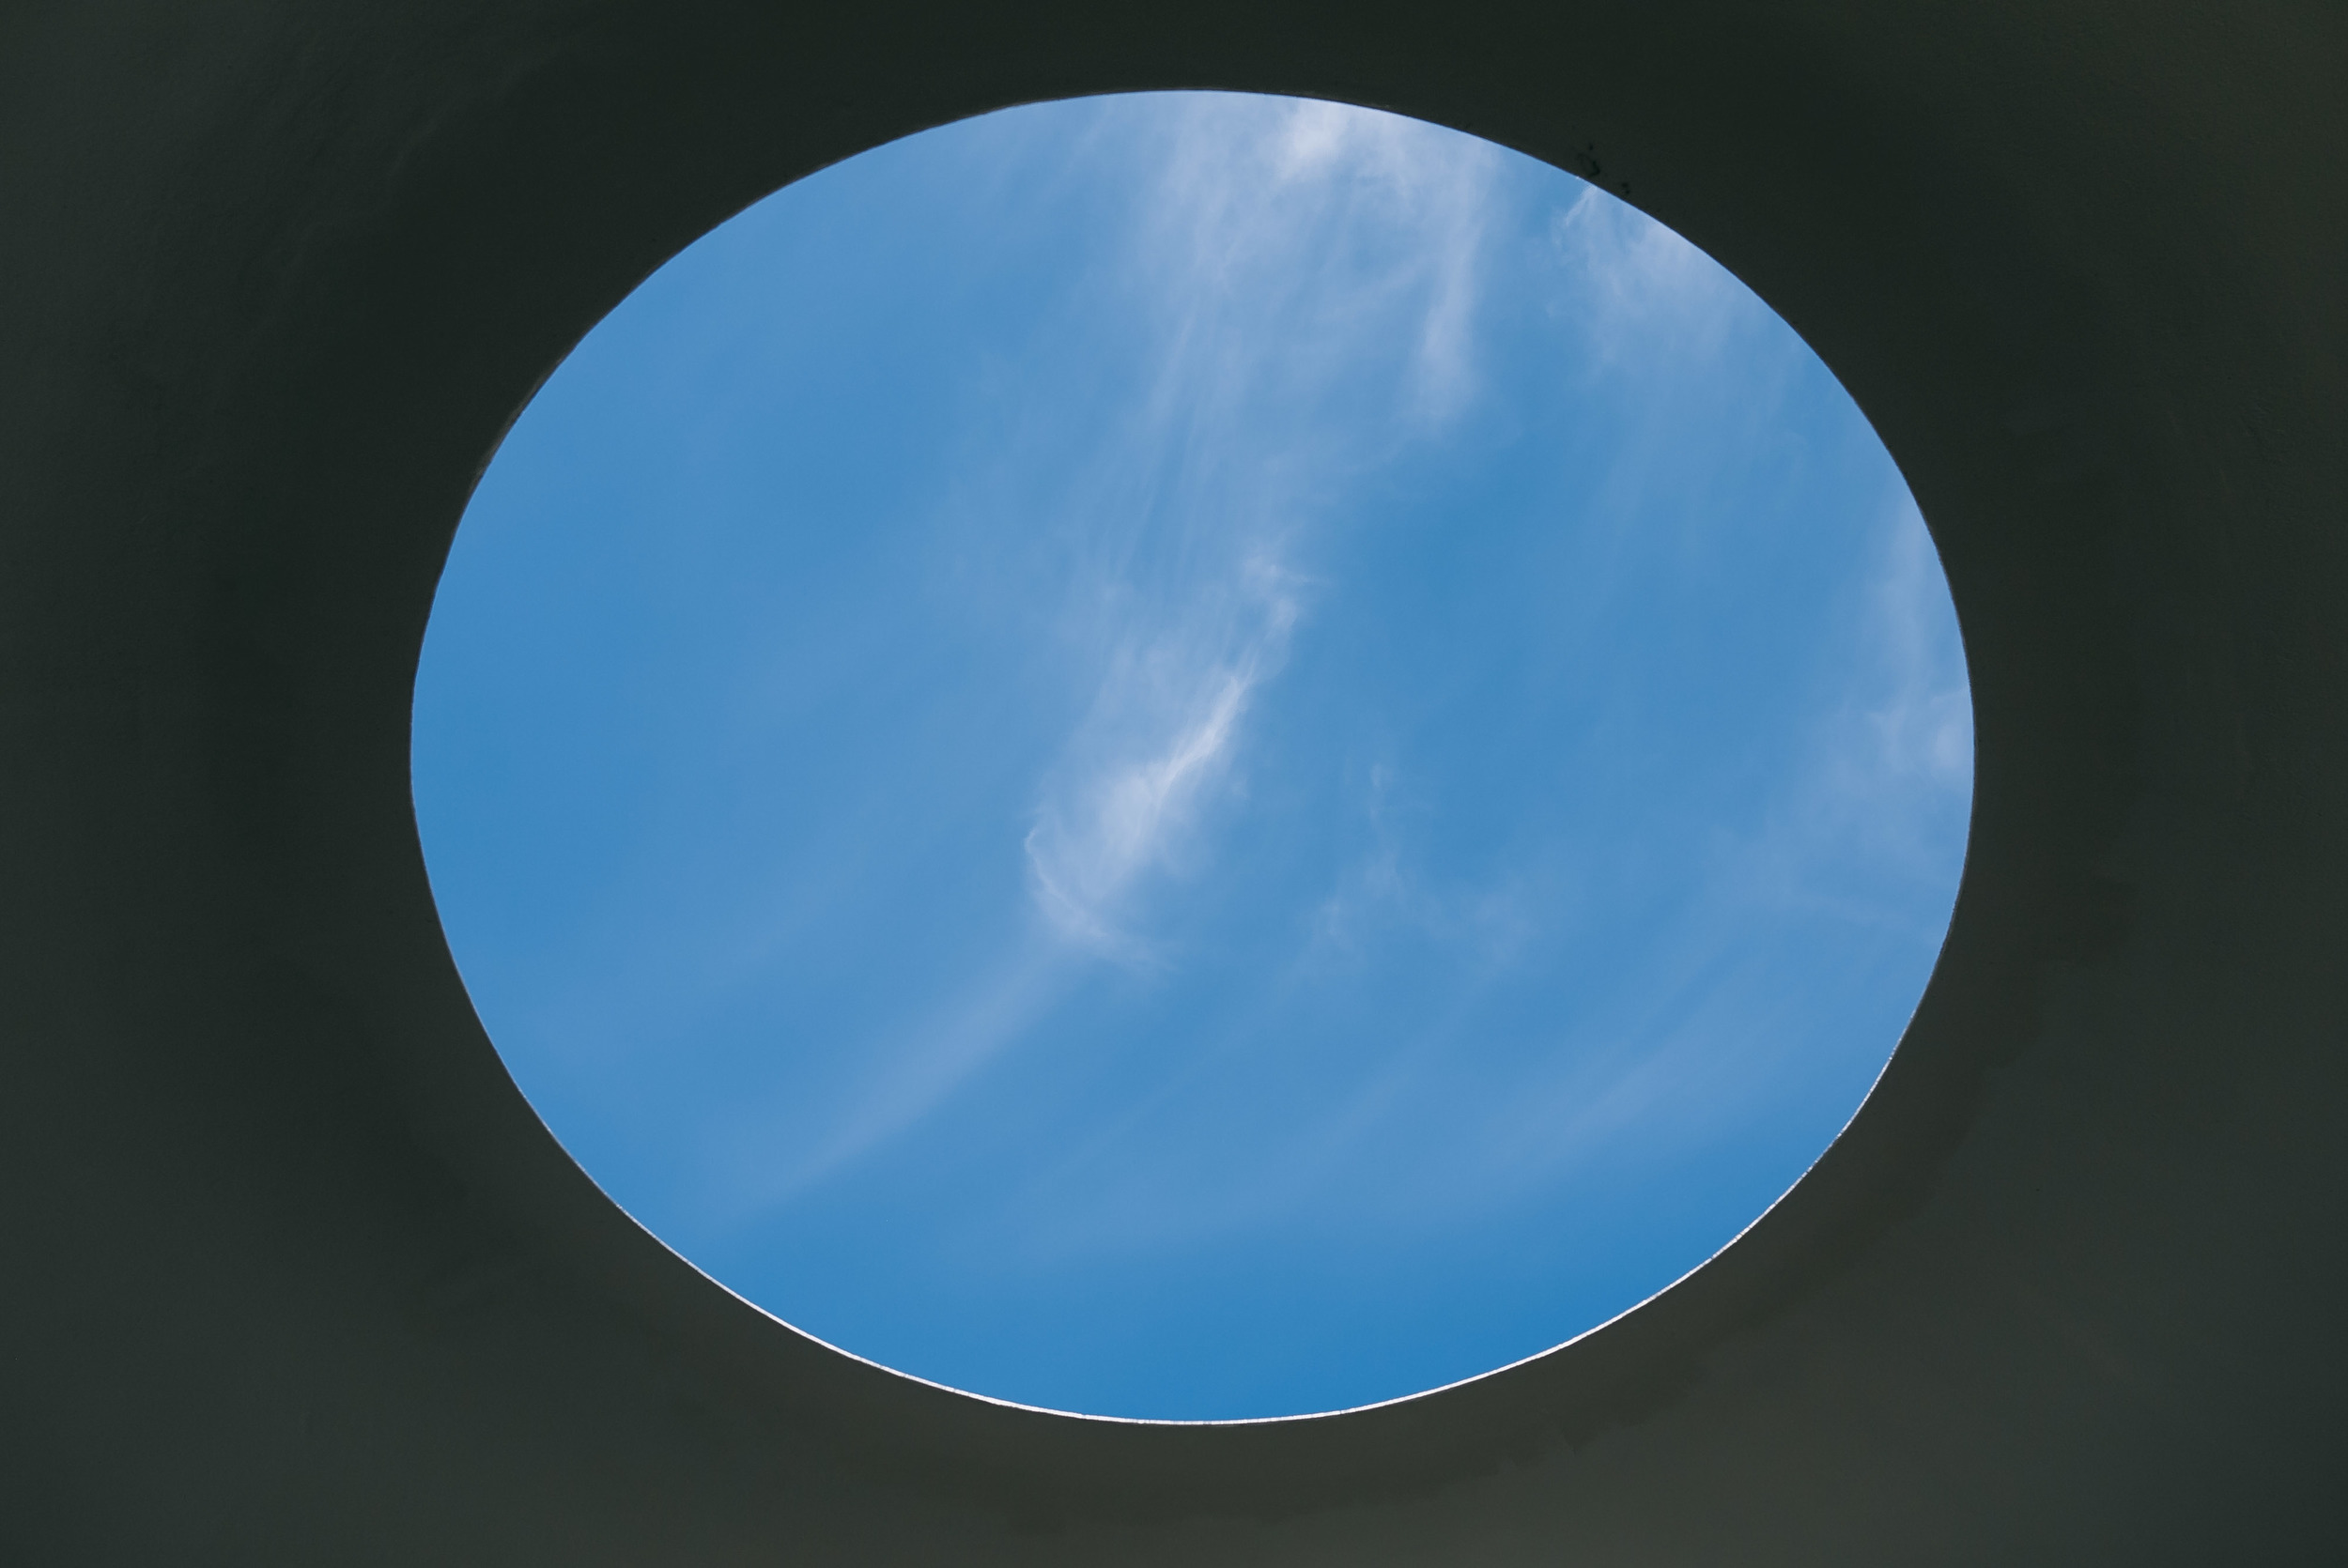 James Turrell's Three Gems   - a permanent installment tucked away in the outdoor garden section of the museum.